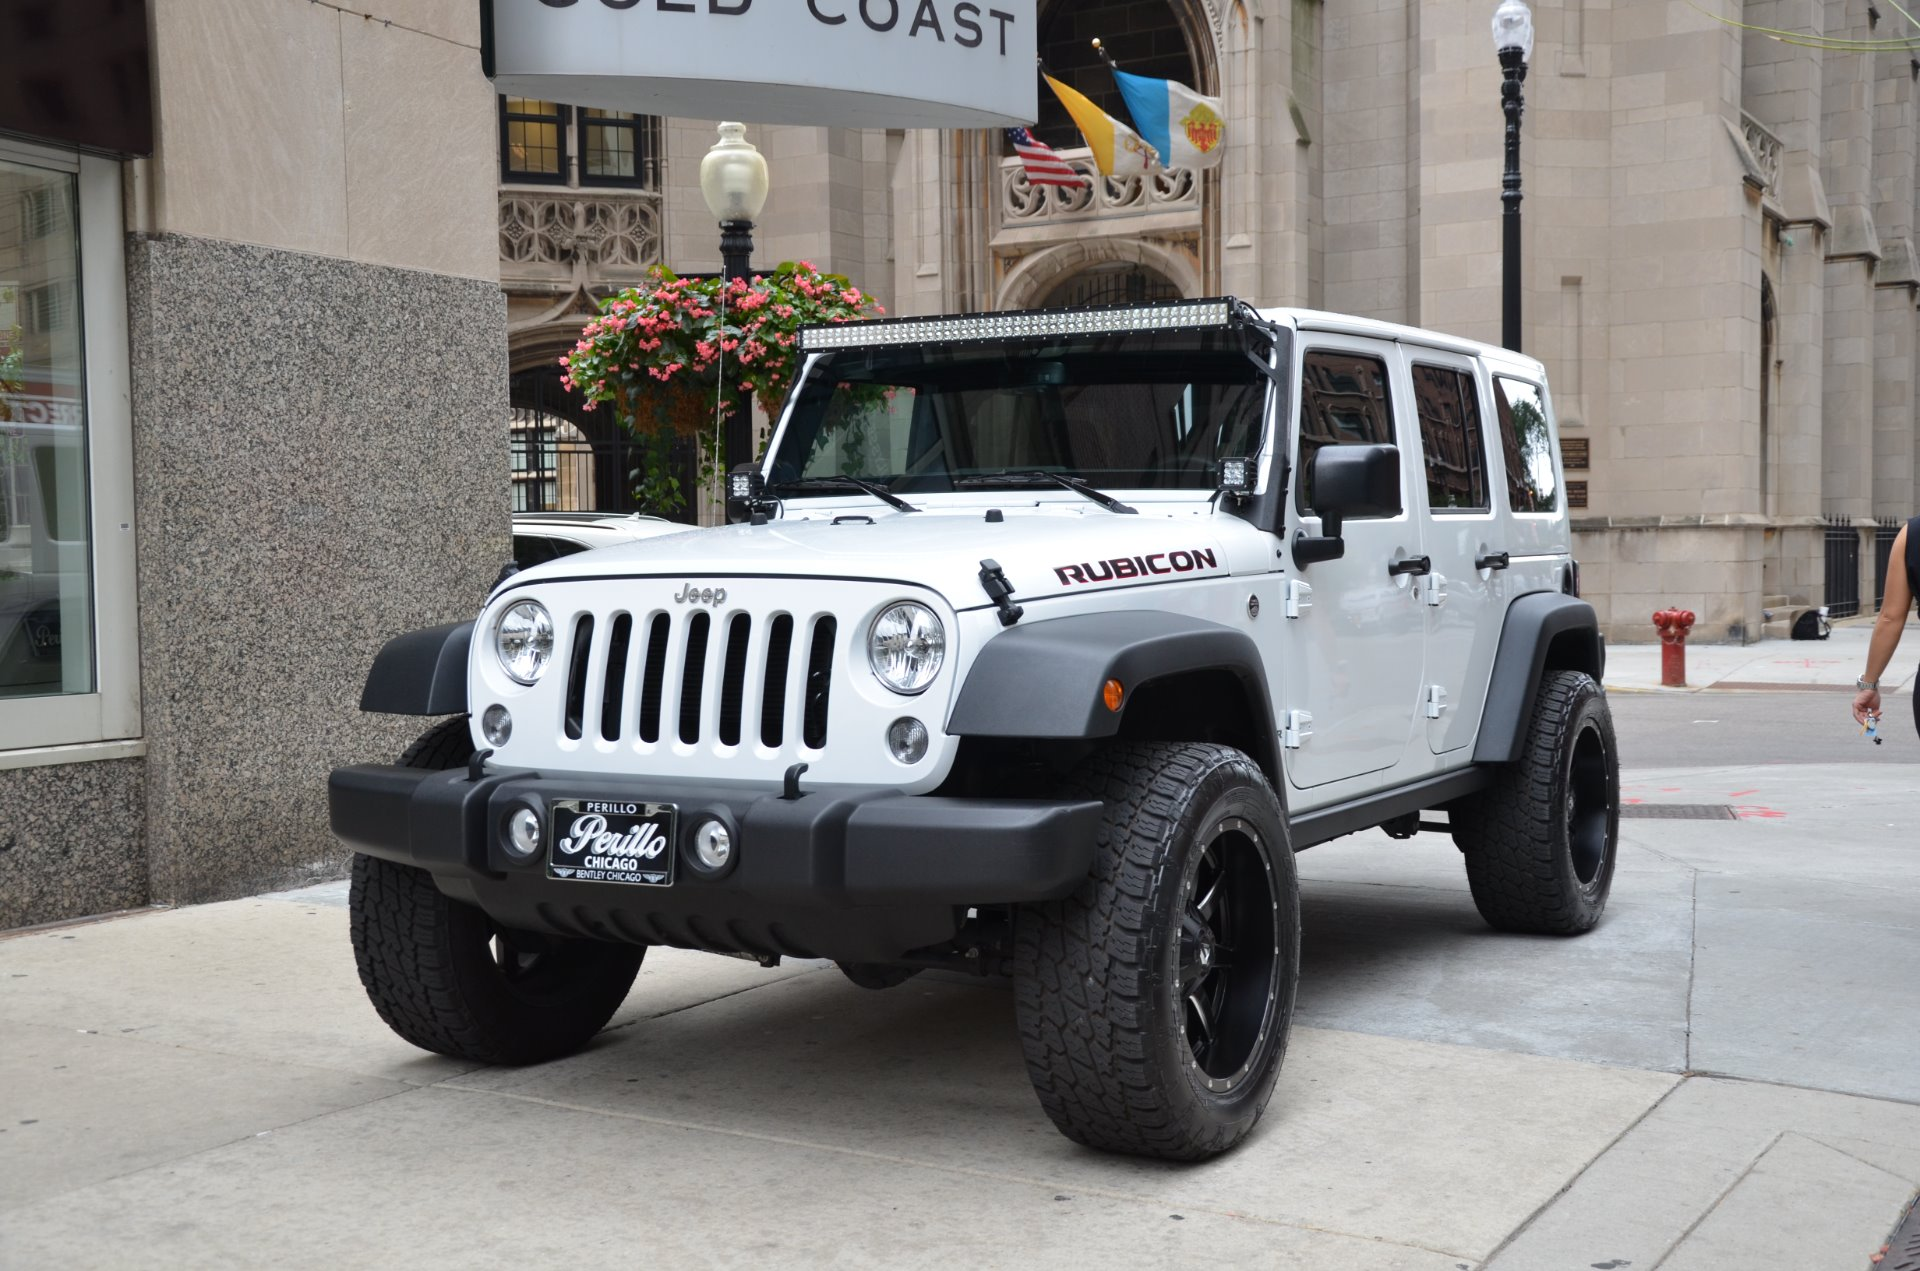 2016 jeep wrangler unlimited rubicon stock gc charlie02 for sale near chicago il il jeep dealer. Black Bedroom Furniture Sets. Home Design Ideas